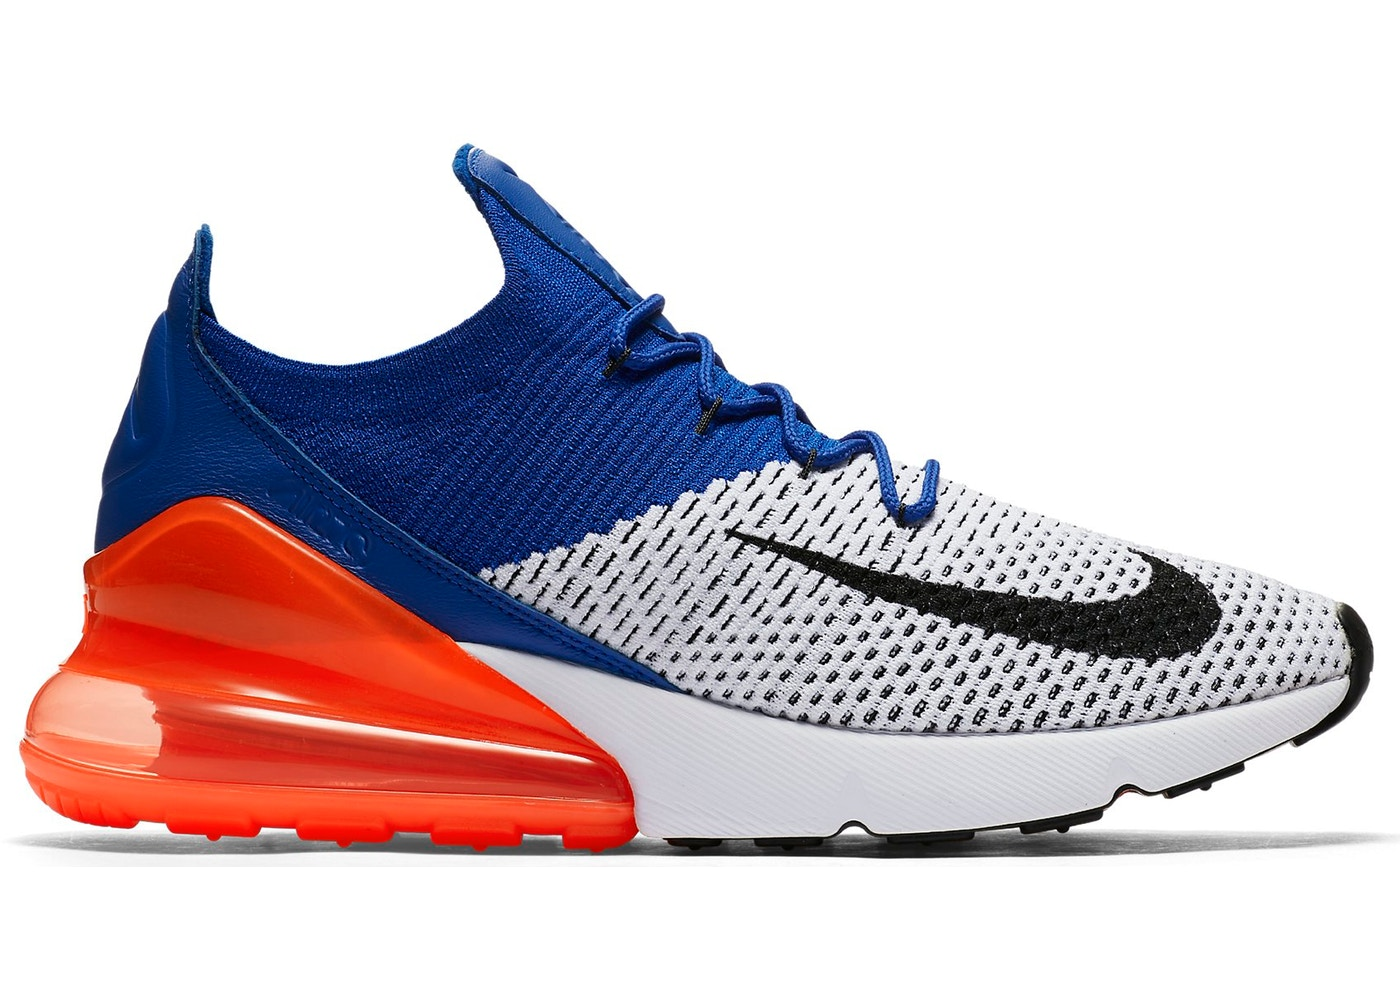 Air Max 270 Flyknit Racer Blue Total Crimson - AO1023-101